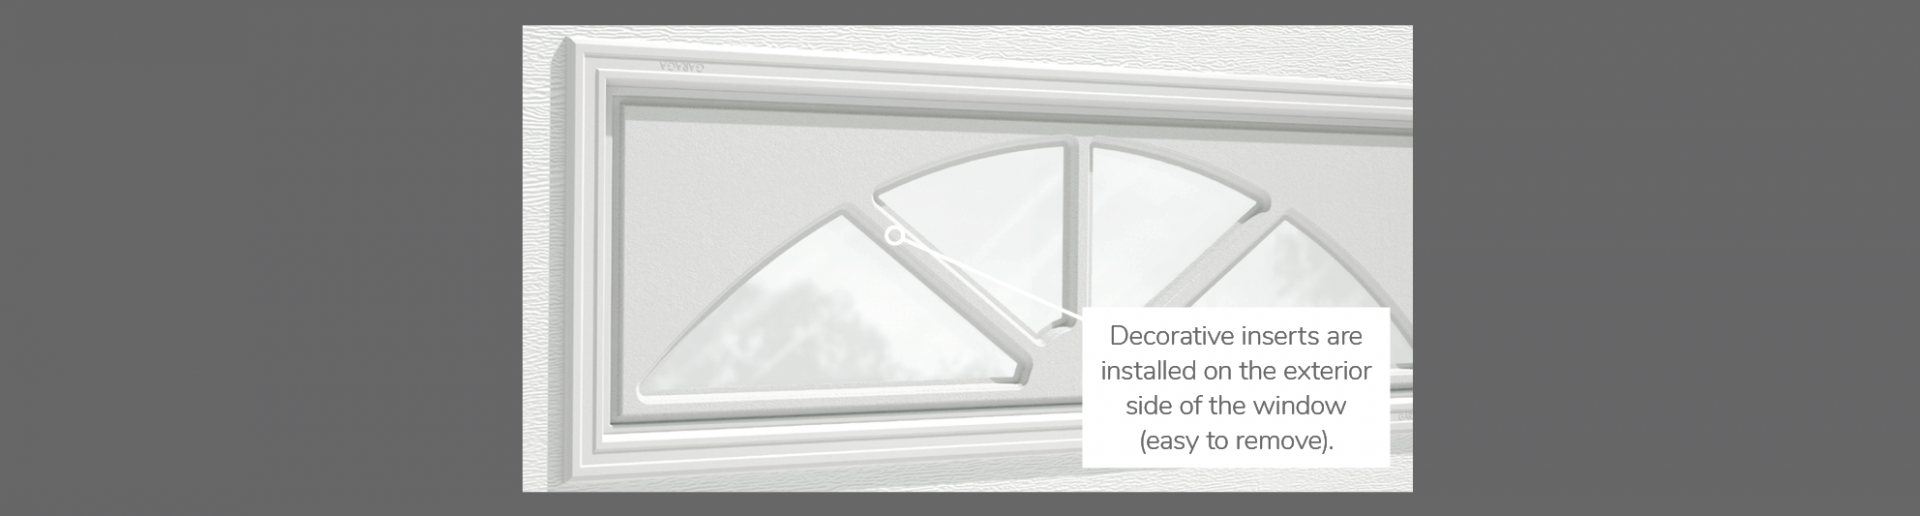 "Sherwood Decorative Insert, 40"" x 13"", available for door R-16 and R-12"